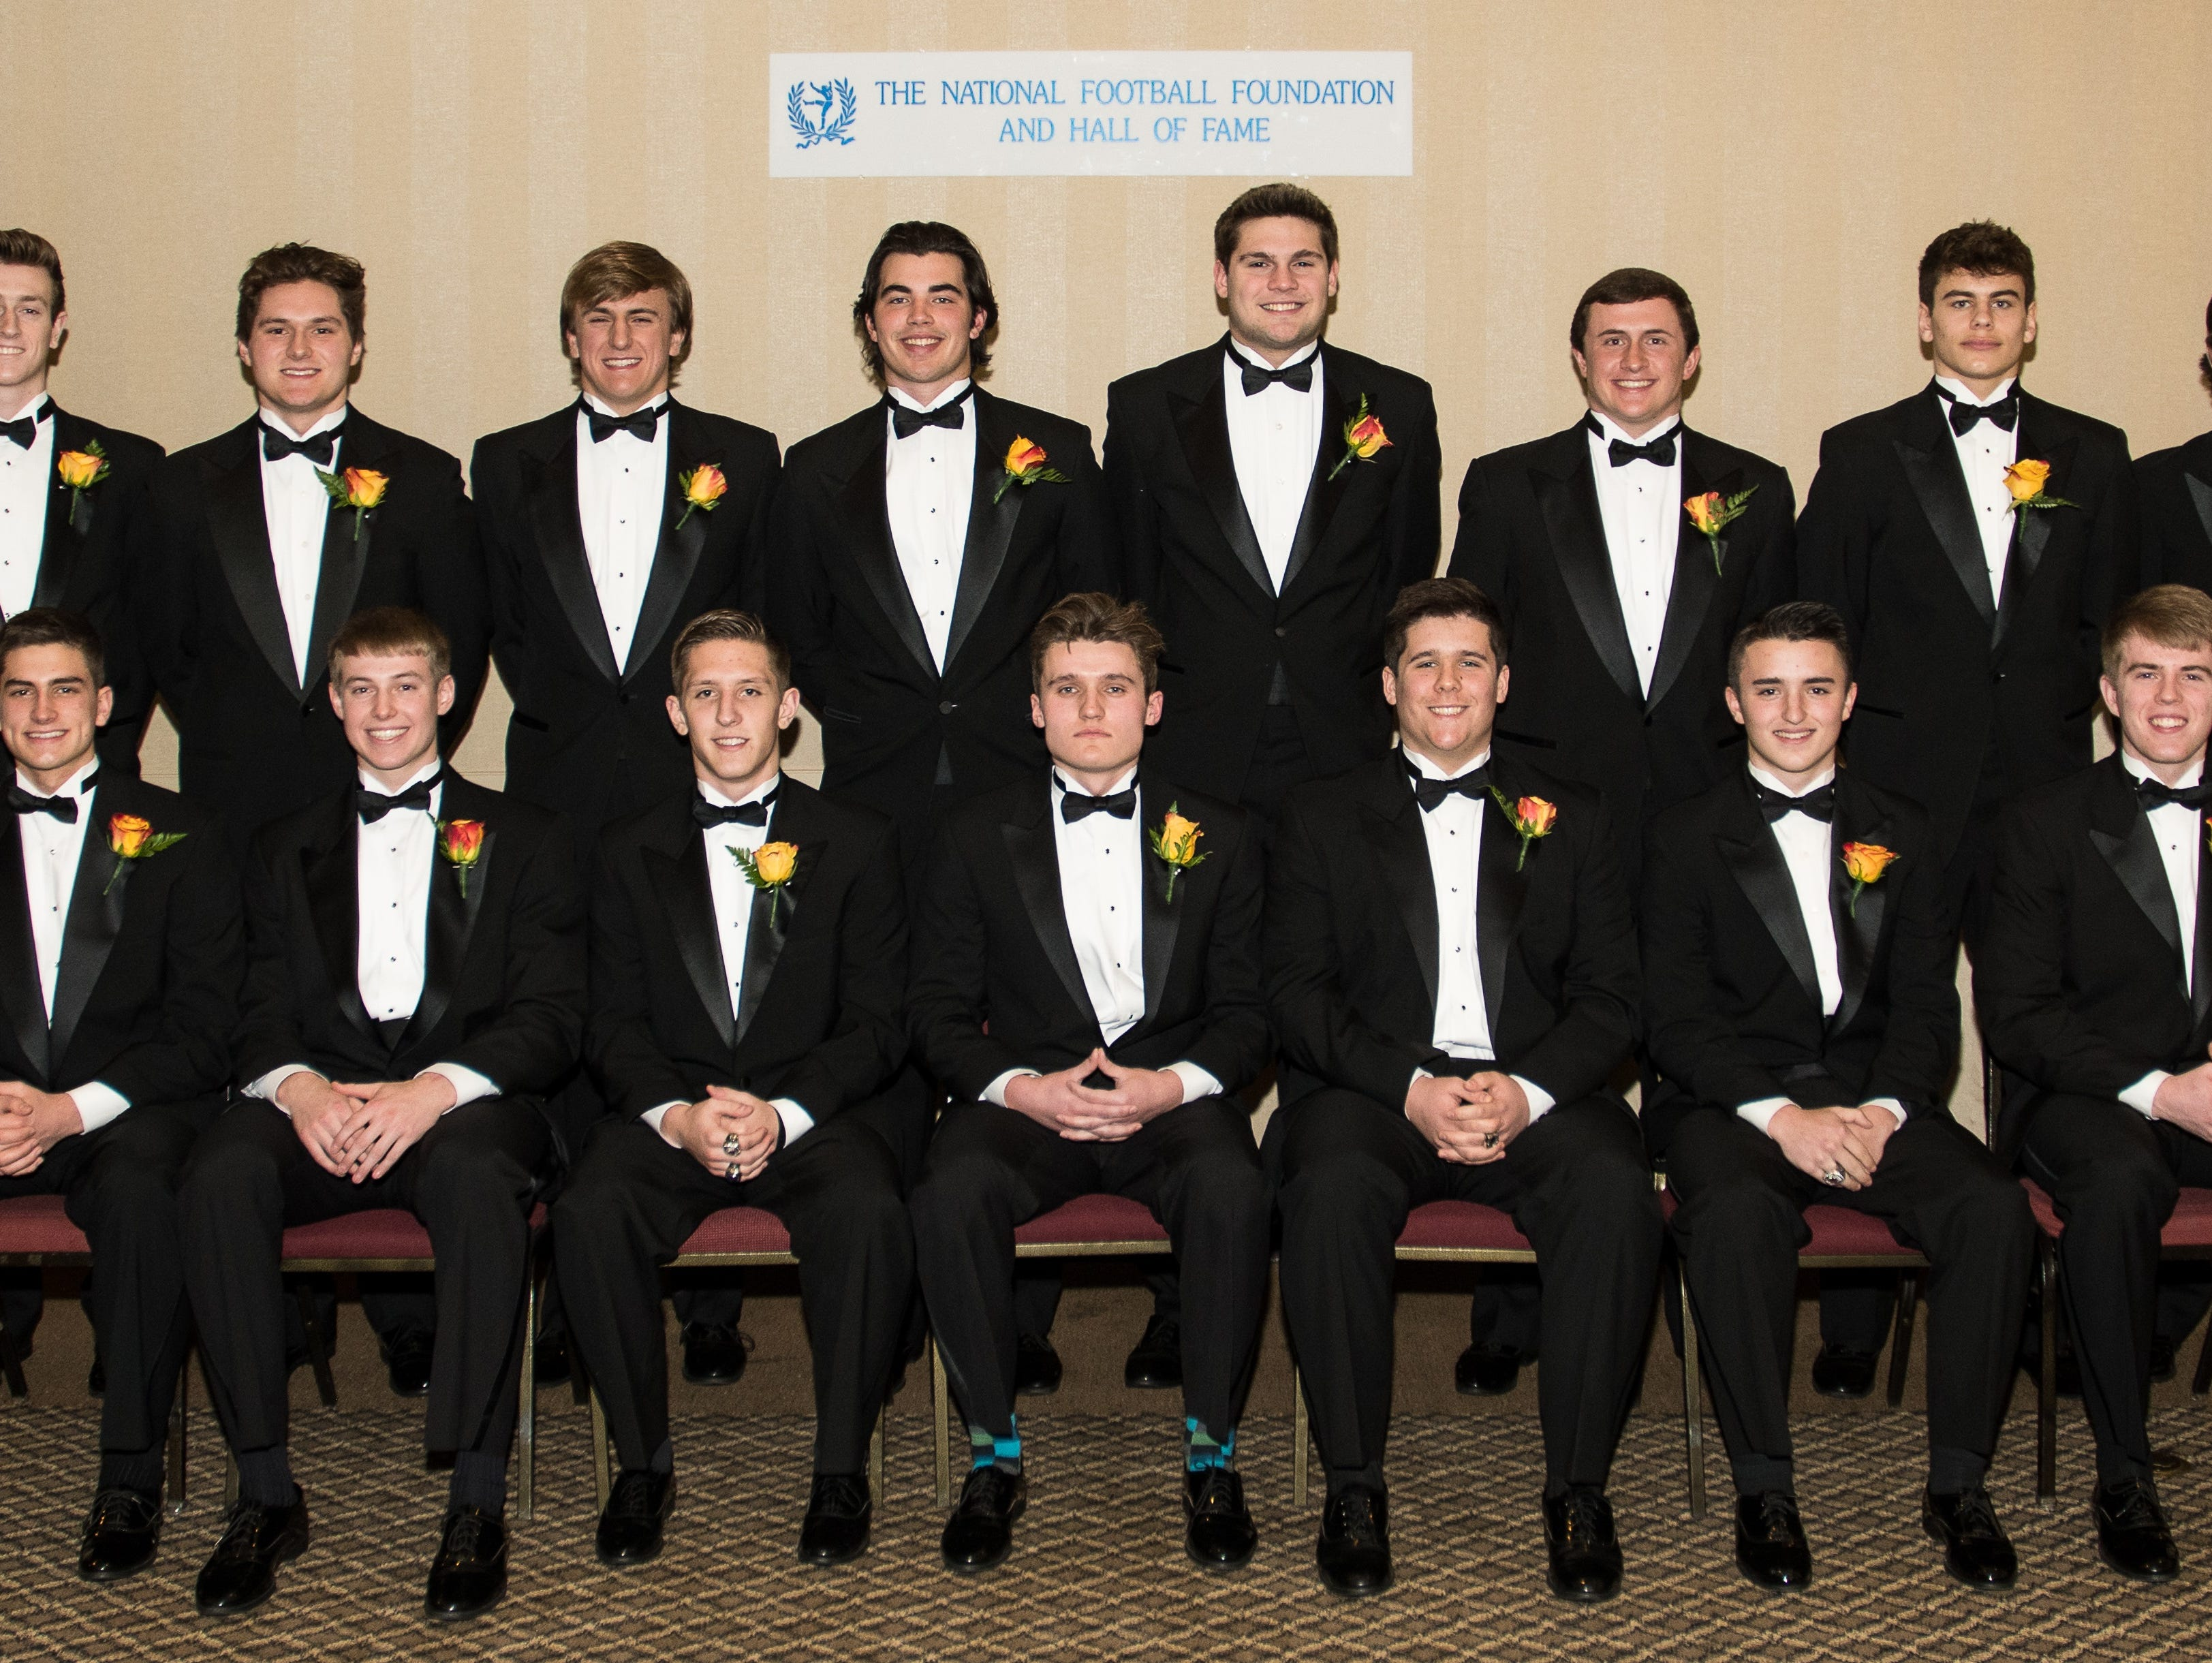 The Scholar-Athlete finalists at the National Football Foundation Oregon Banquet are (back row from left) Tanner Scanlon of North Marion, Jackson Platt of Beaverton, Jack Suing of Kennedy, Brandon Leitgeb of Lincoln, Lukas Nixon of Sherwood, Nick Wiley of Sunset, Eric Gustin of Regis, Tanner Earhart of Dallas and (front row from left) Fridtjof Fremstad of Astoria, Brett Traeger of Kennedy, Cole Sipos of Lebanon, Conner Morris of Newberg, Dominic Federico of Cascade, Tyler Hargis of Lebanon and Tyler Miller of Lebanon.